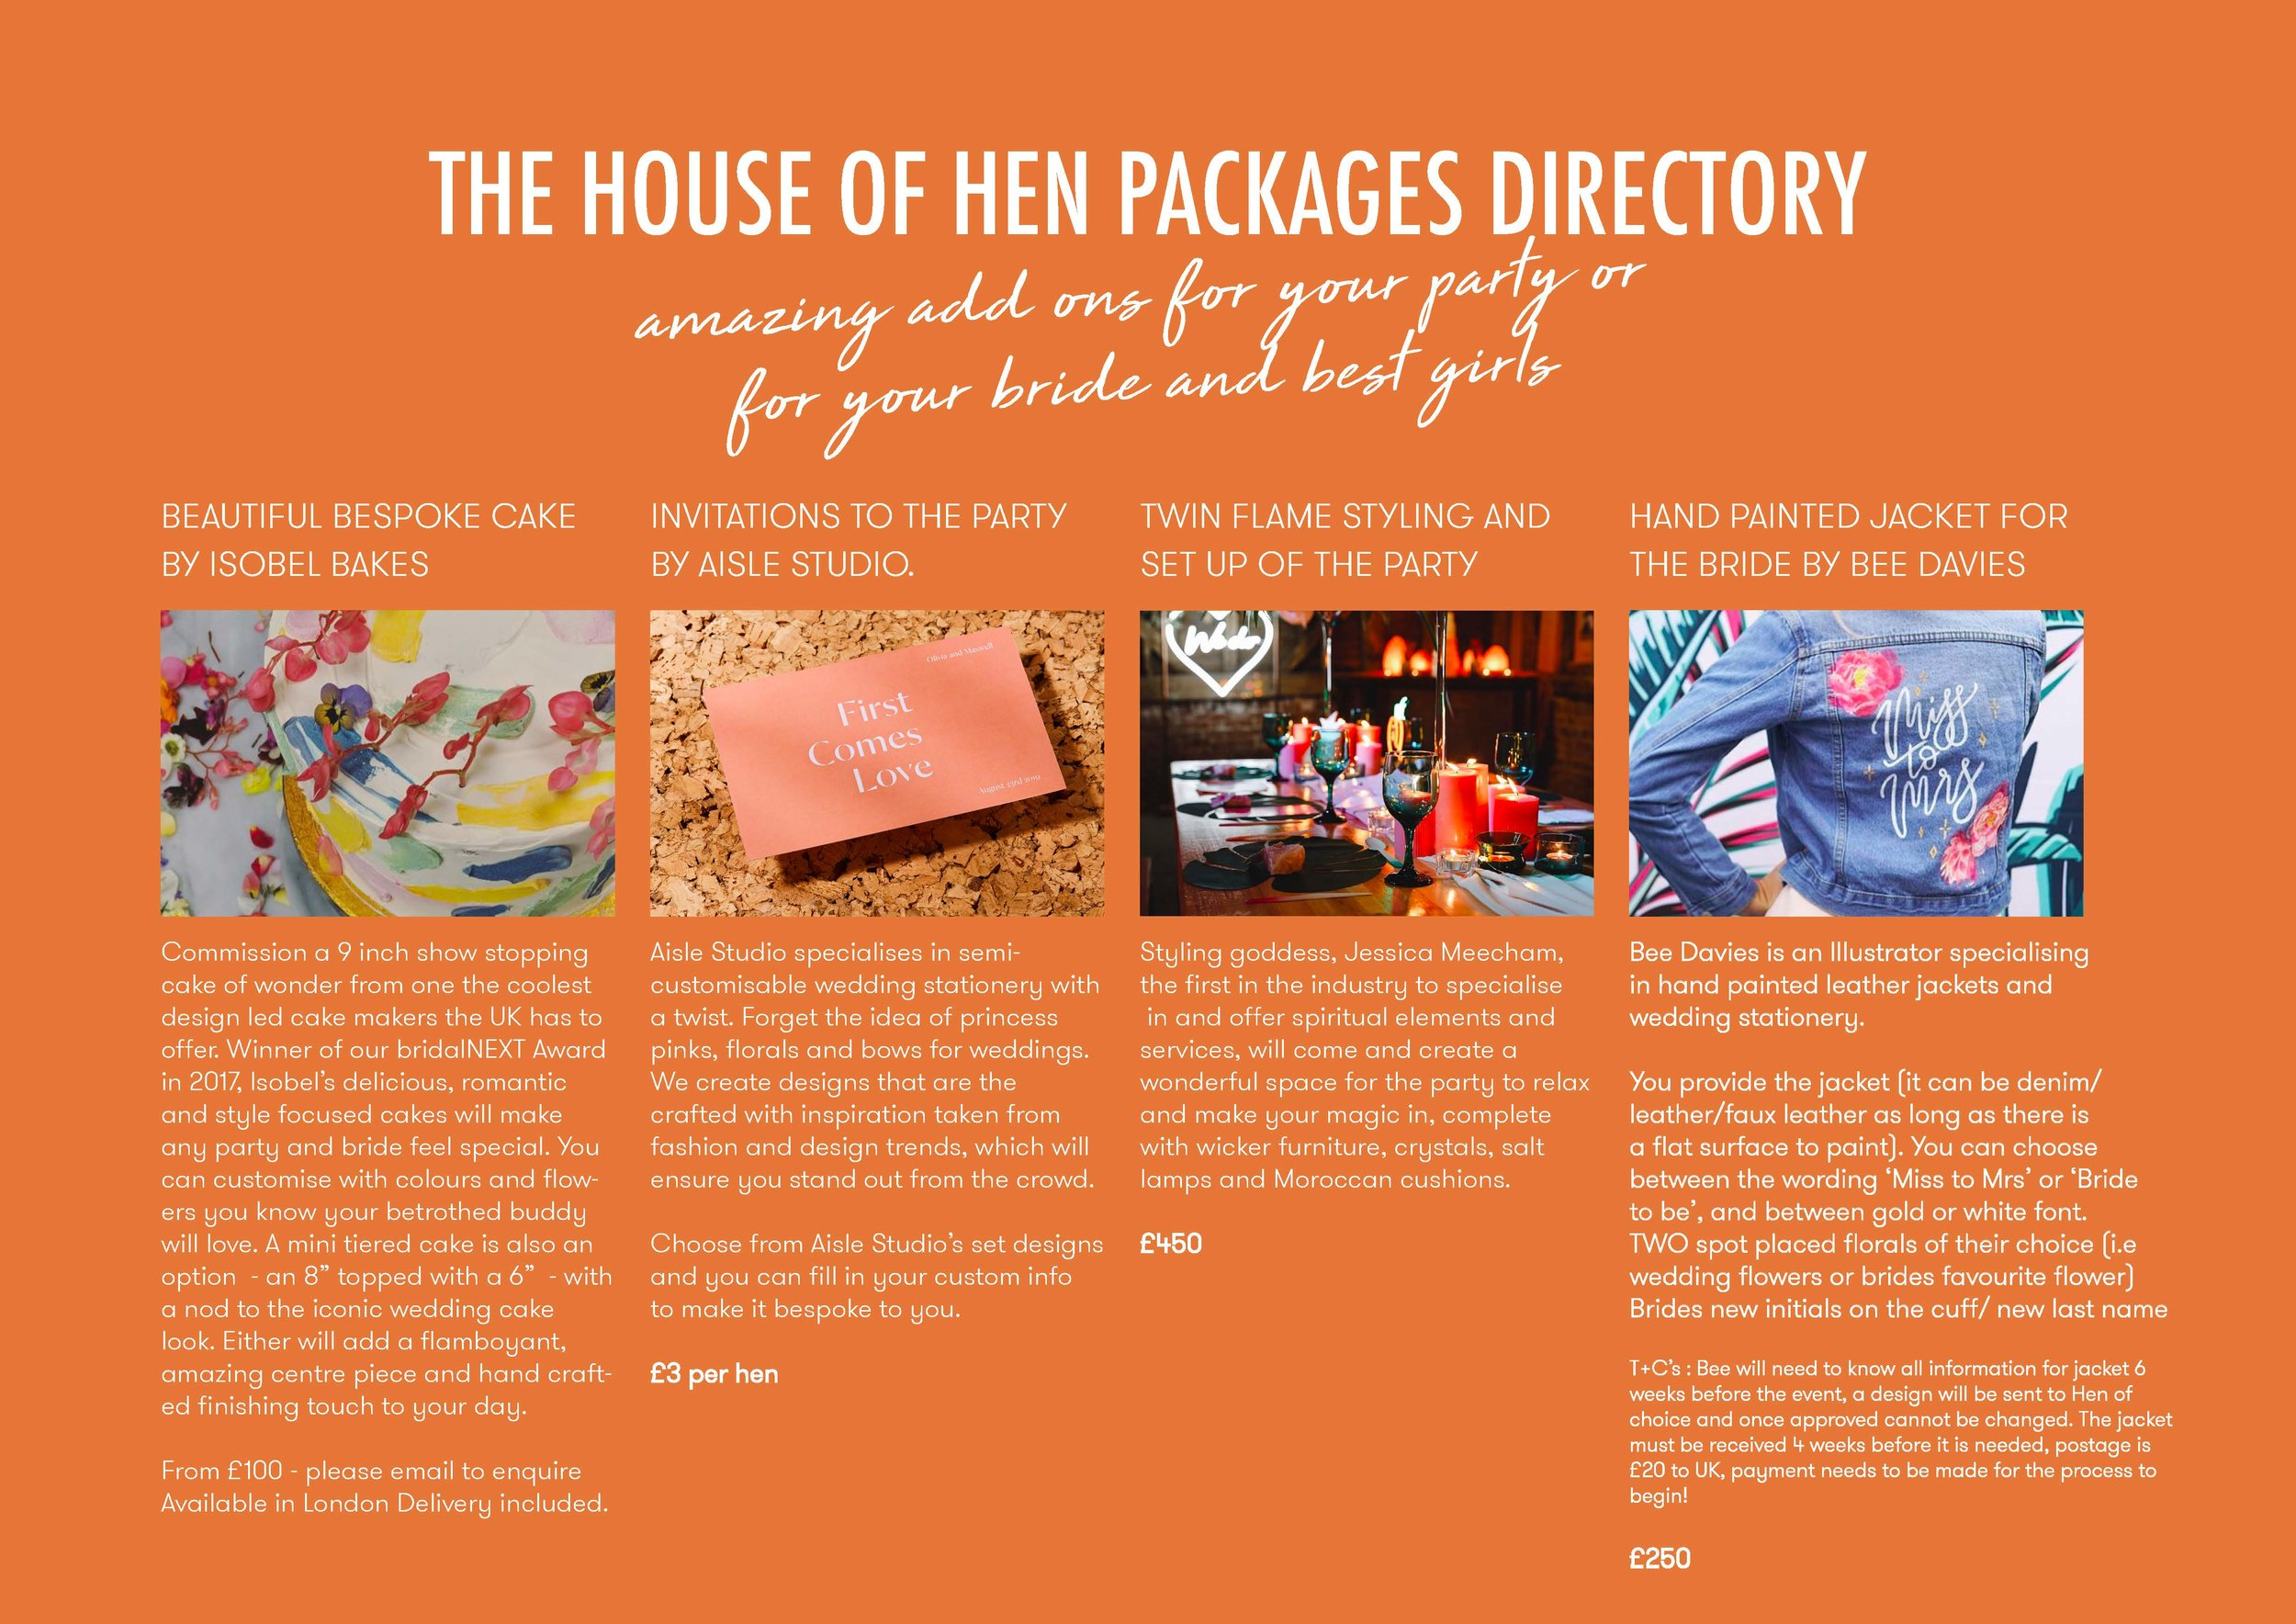 House of Hen_Packages Directory_Page_10.jpg